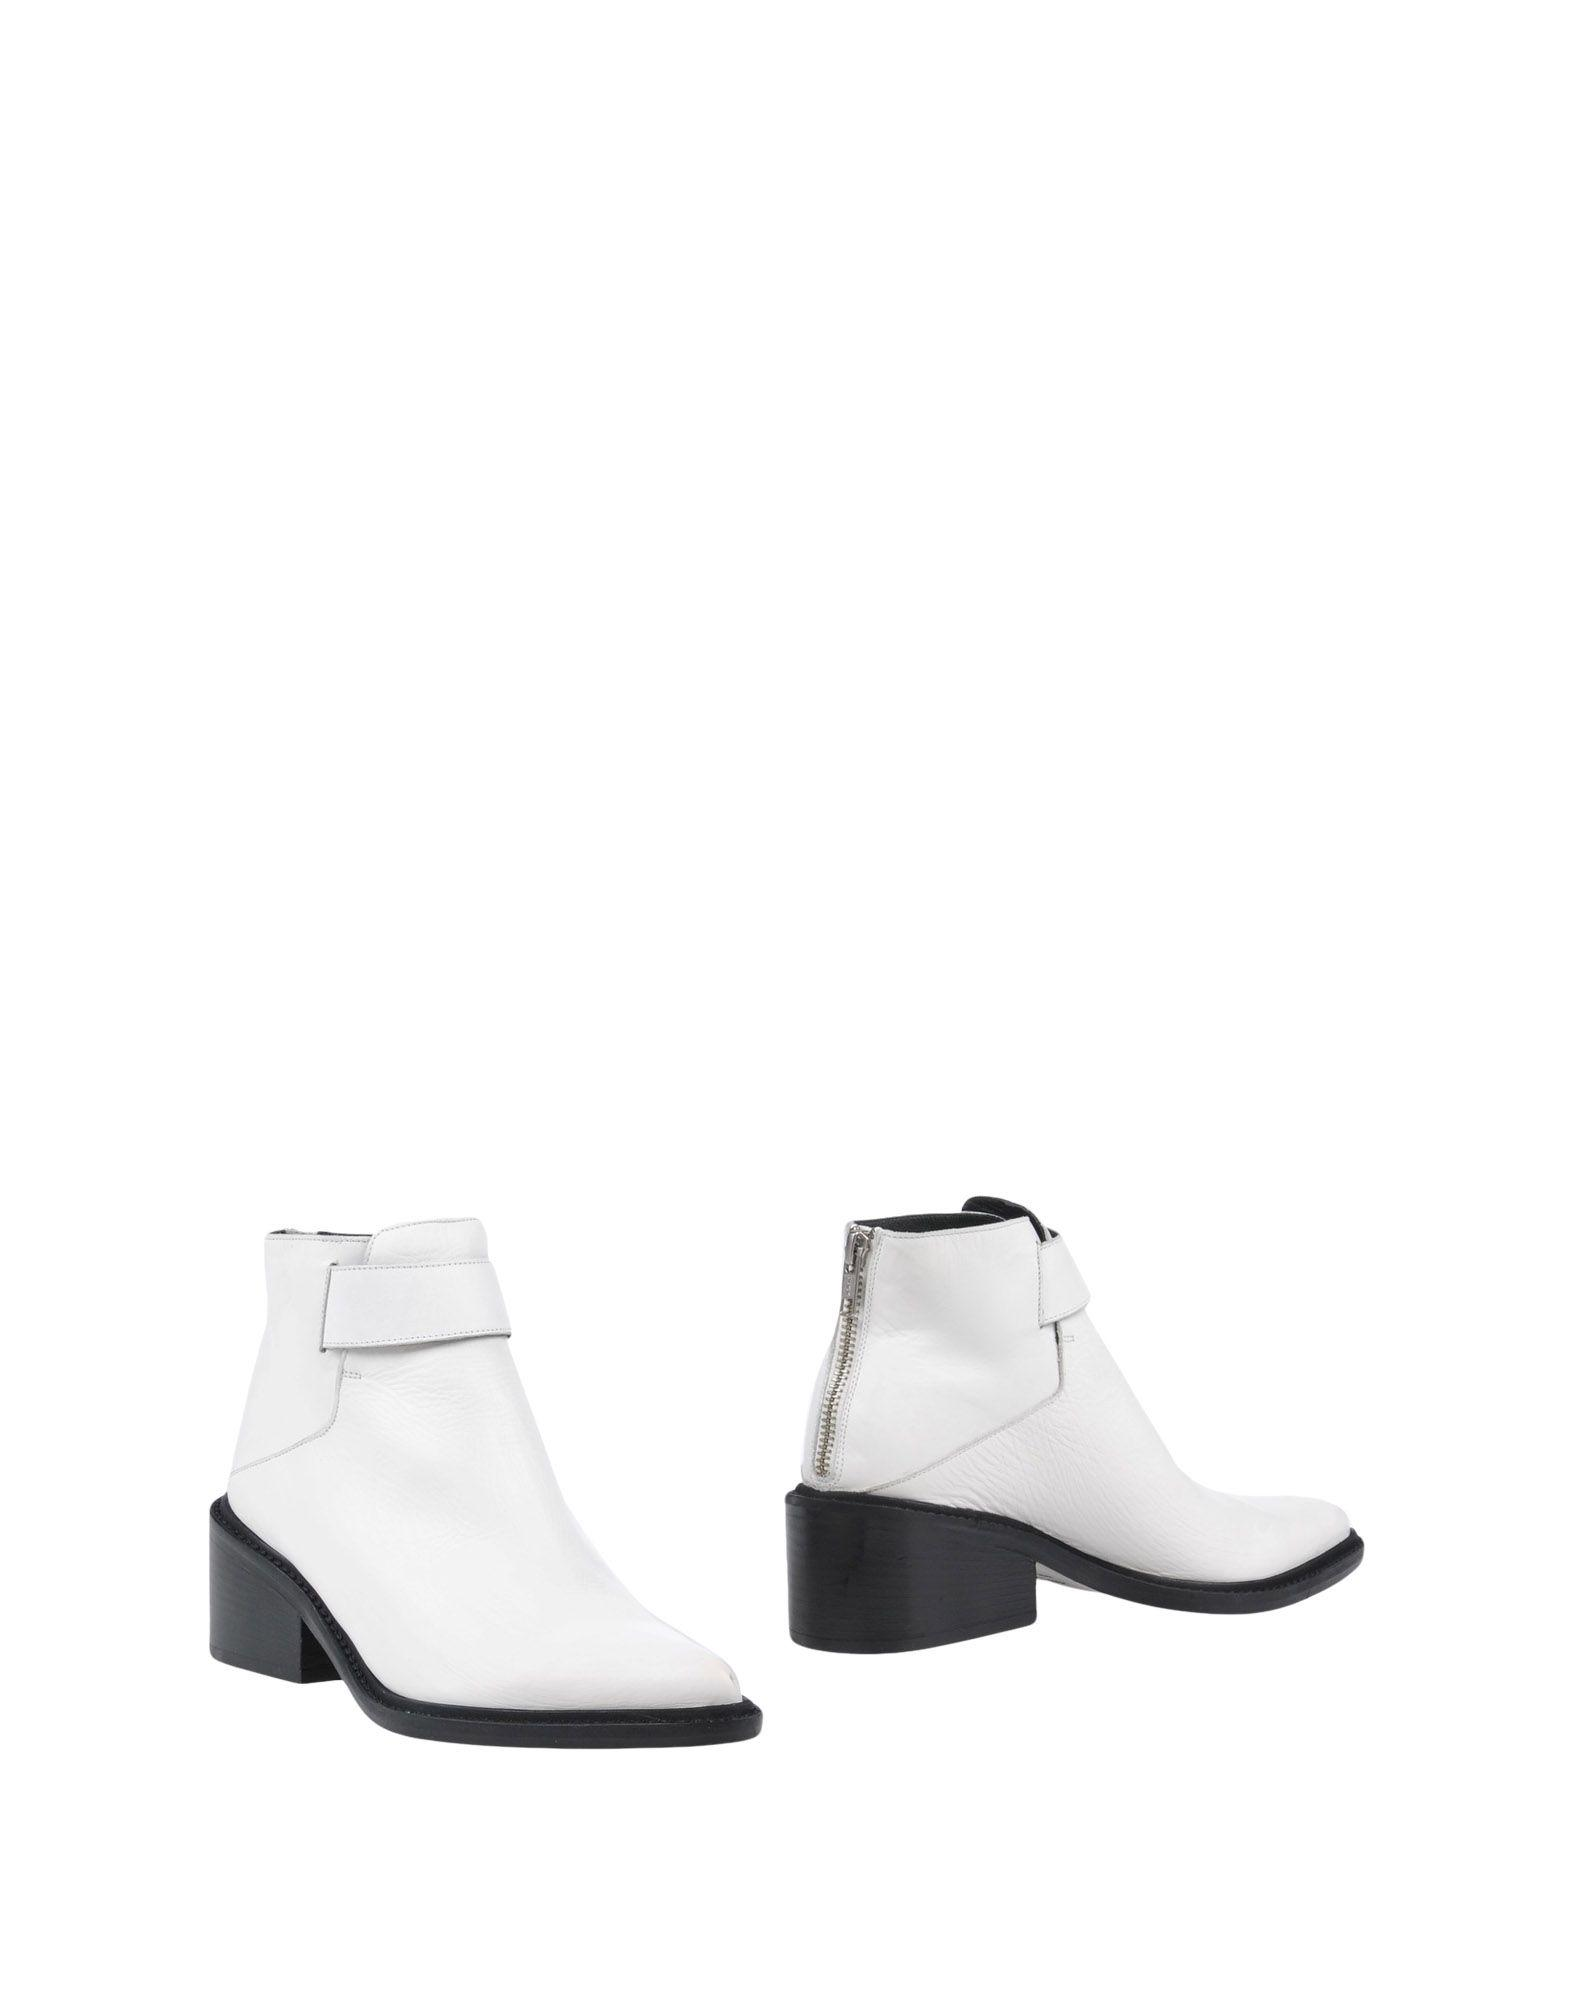 Helmut Lang Ankle Boots In White